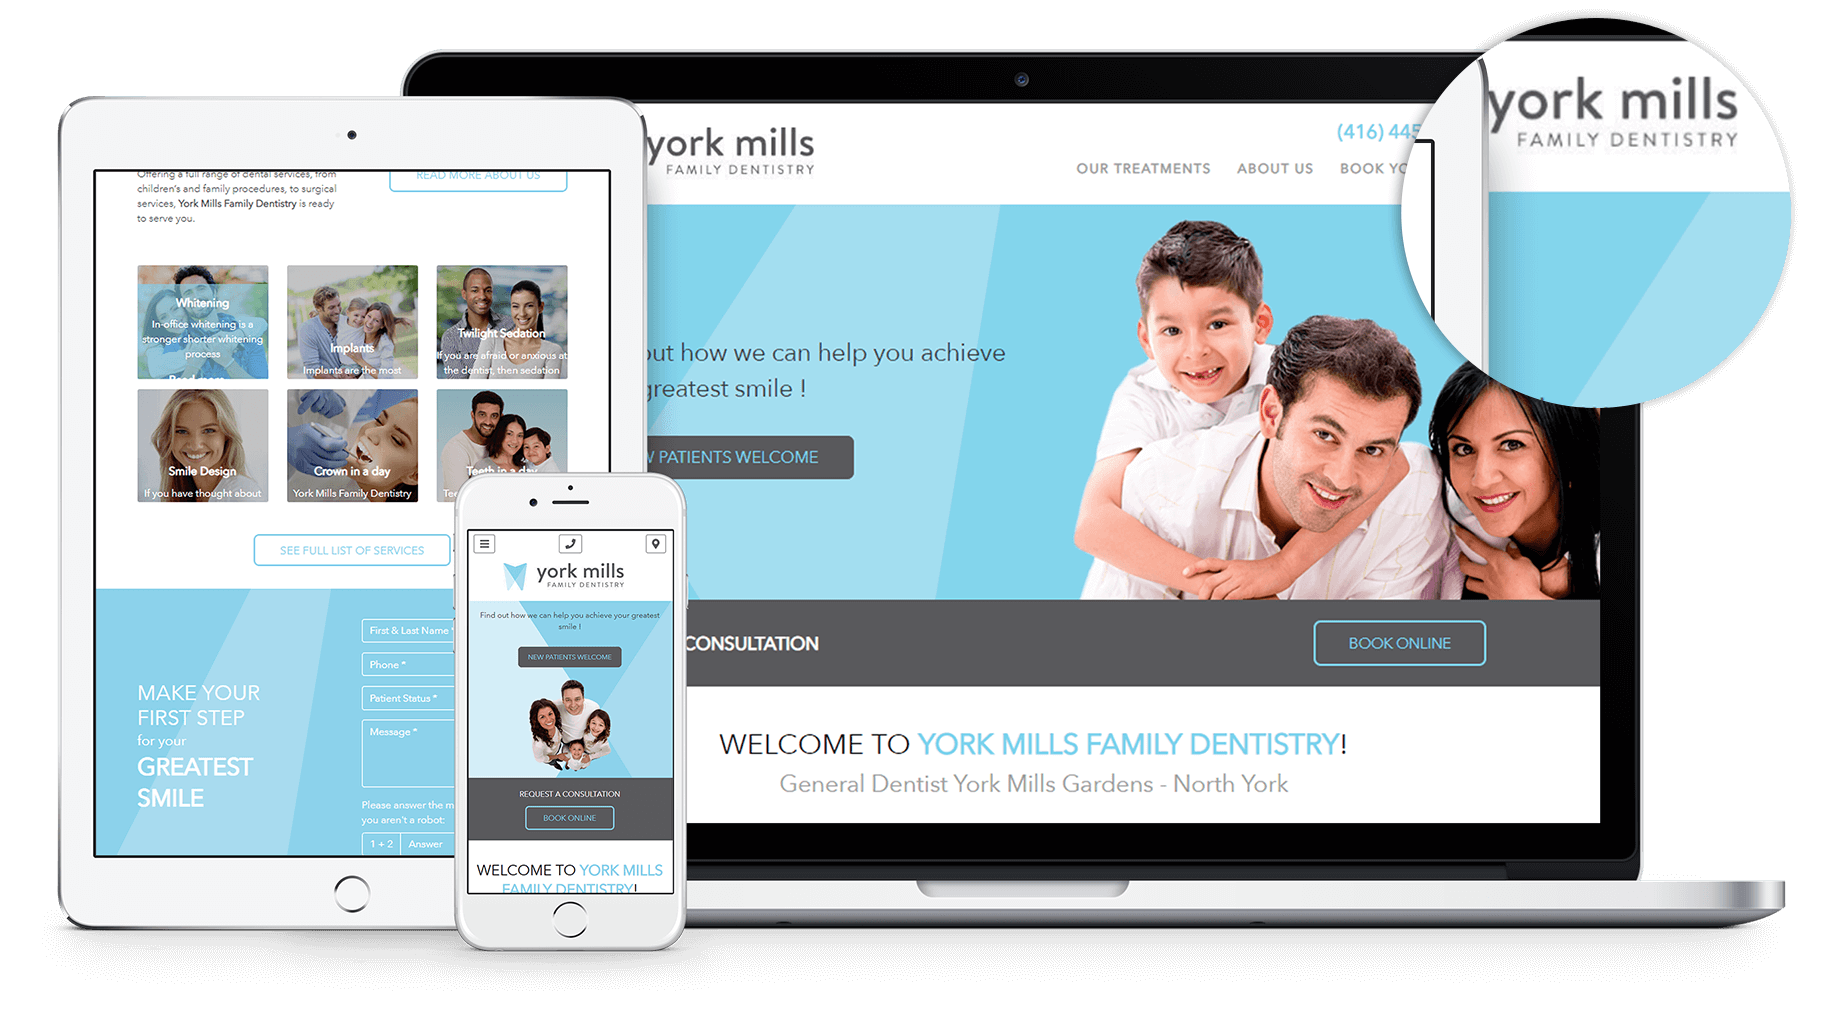 New Website for York Mills Family Dentistry in North York, Ontario